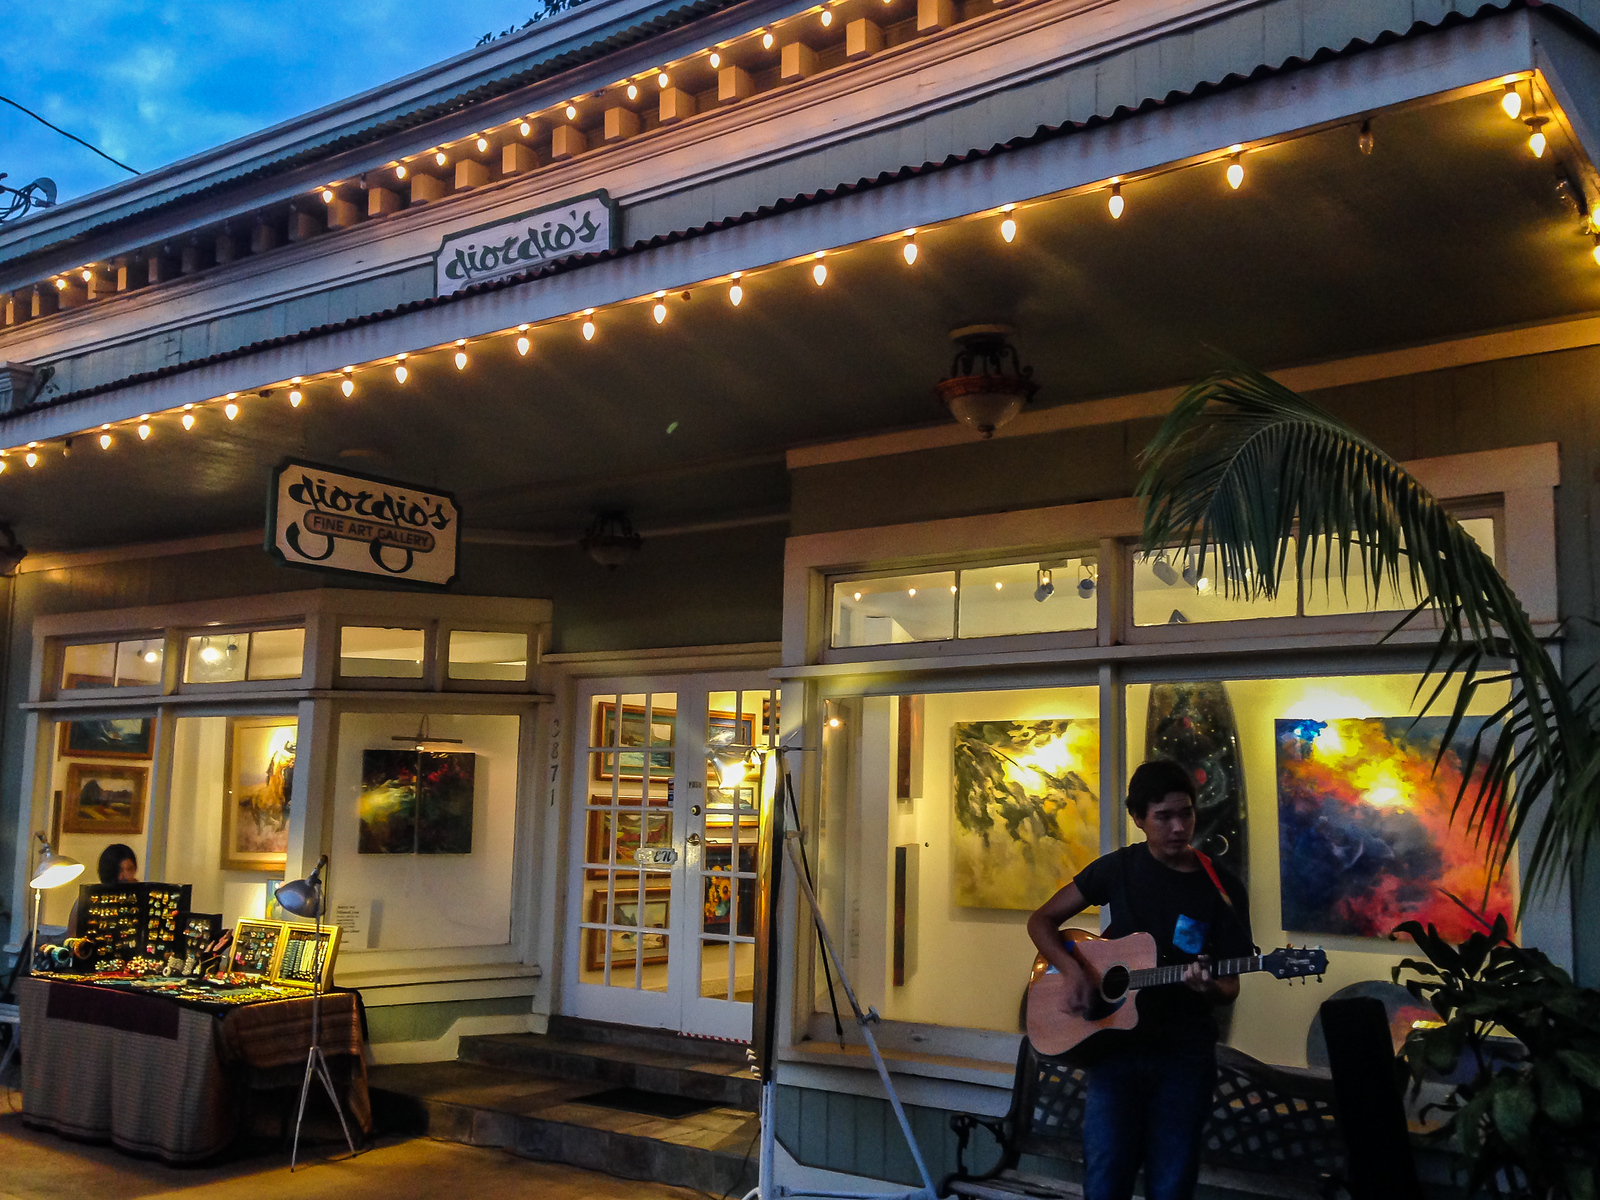 Hanapepe Art Night in Kauai, Hawaii